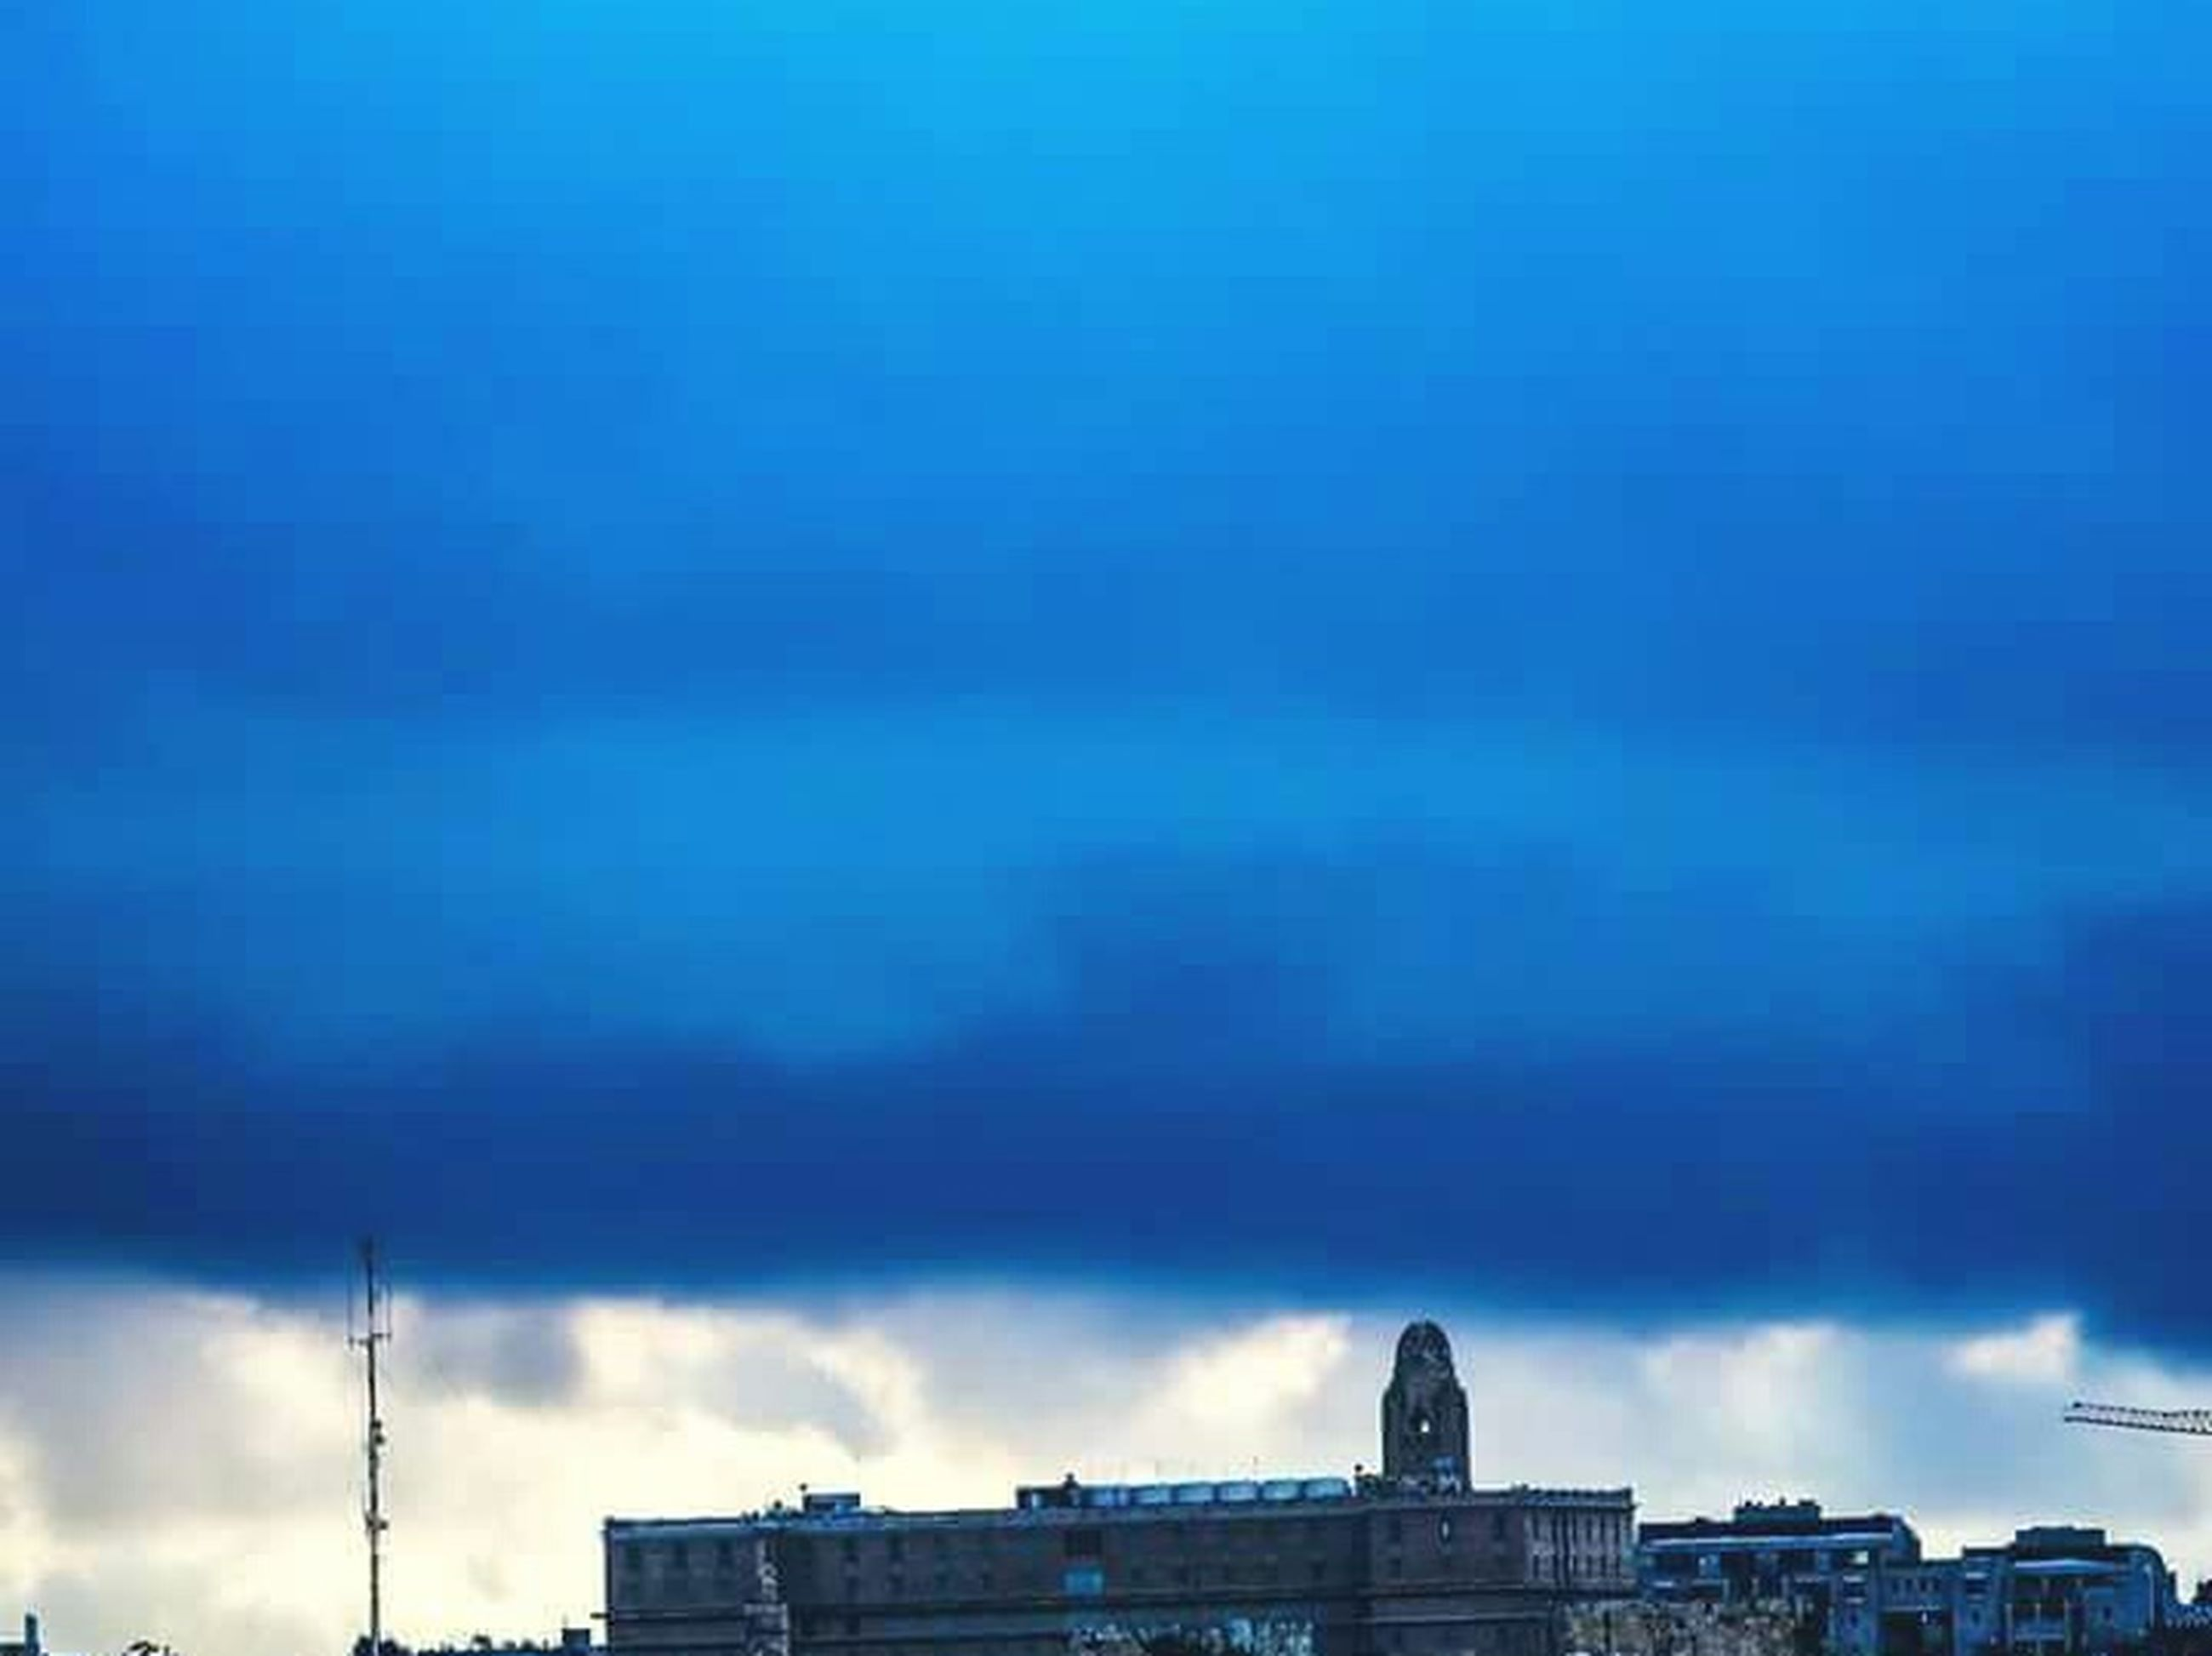 architecture, cloud - sky, built structure, sky, building exterior, blue, outdoors, no people, city, low angle view, cityscape, day, urban skyline